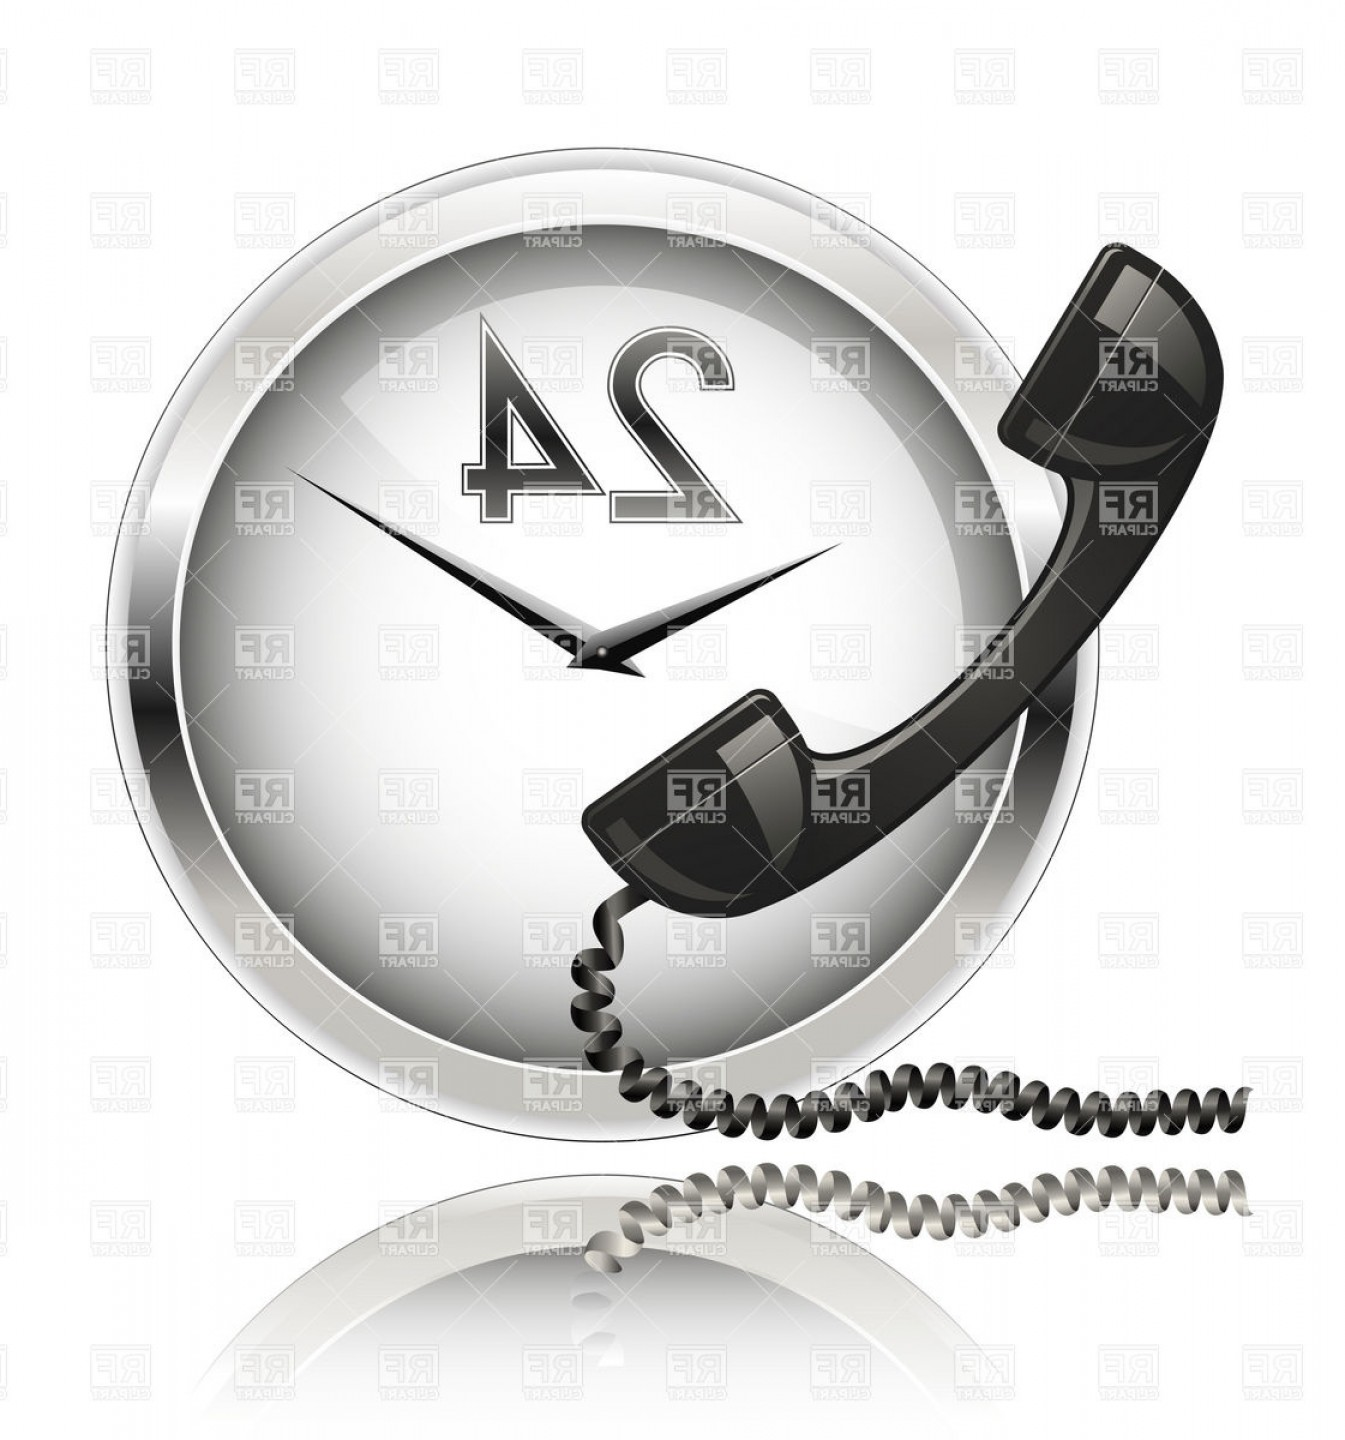 Support Vector Graphics: Wall Clock And Telephone Receiver Round The Clock Support Vector Clipart